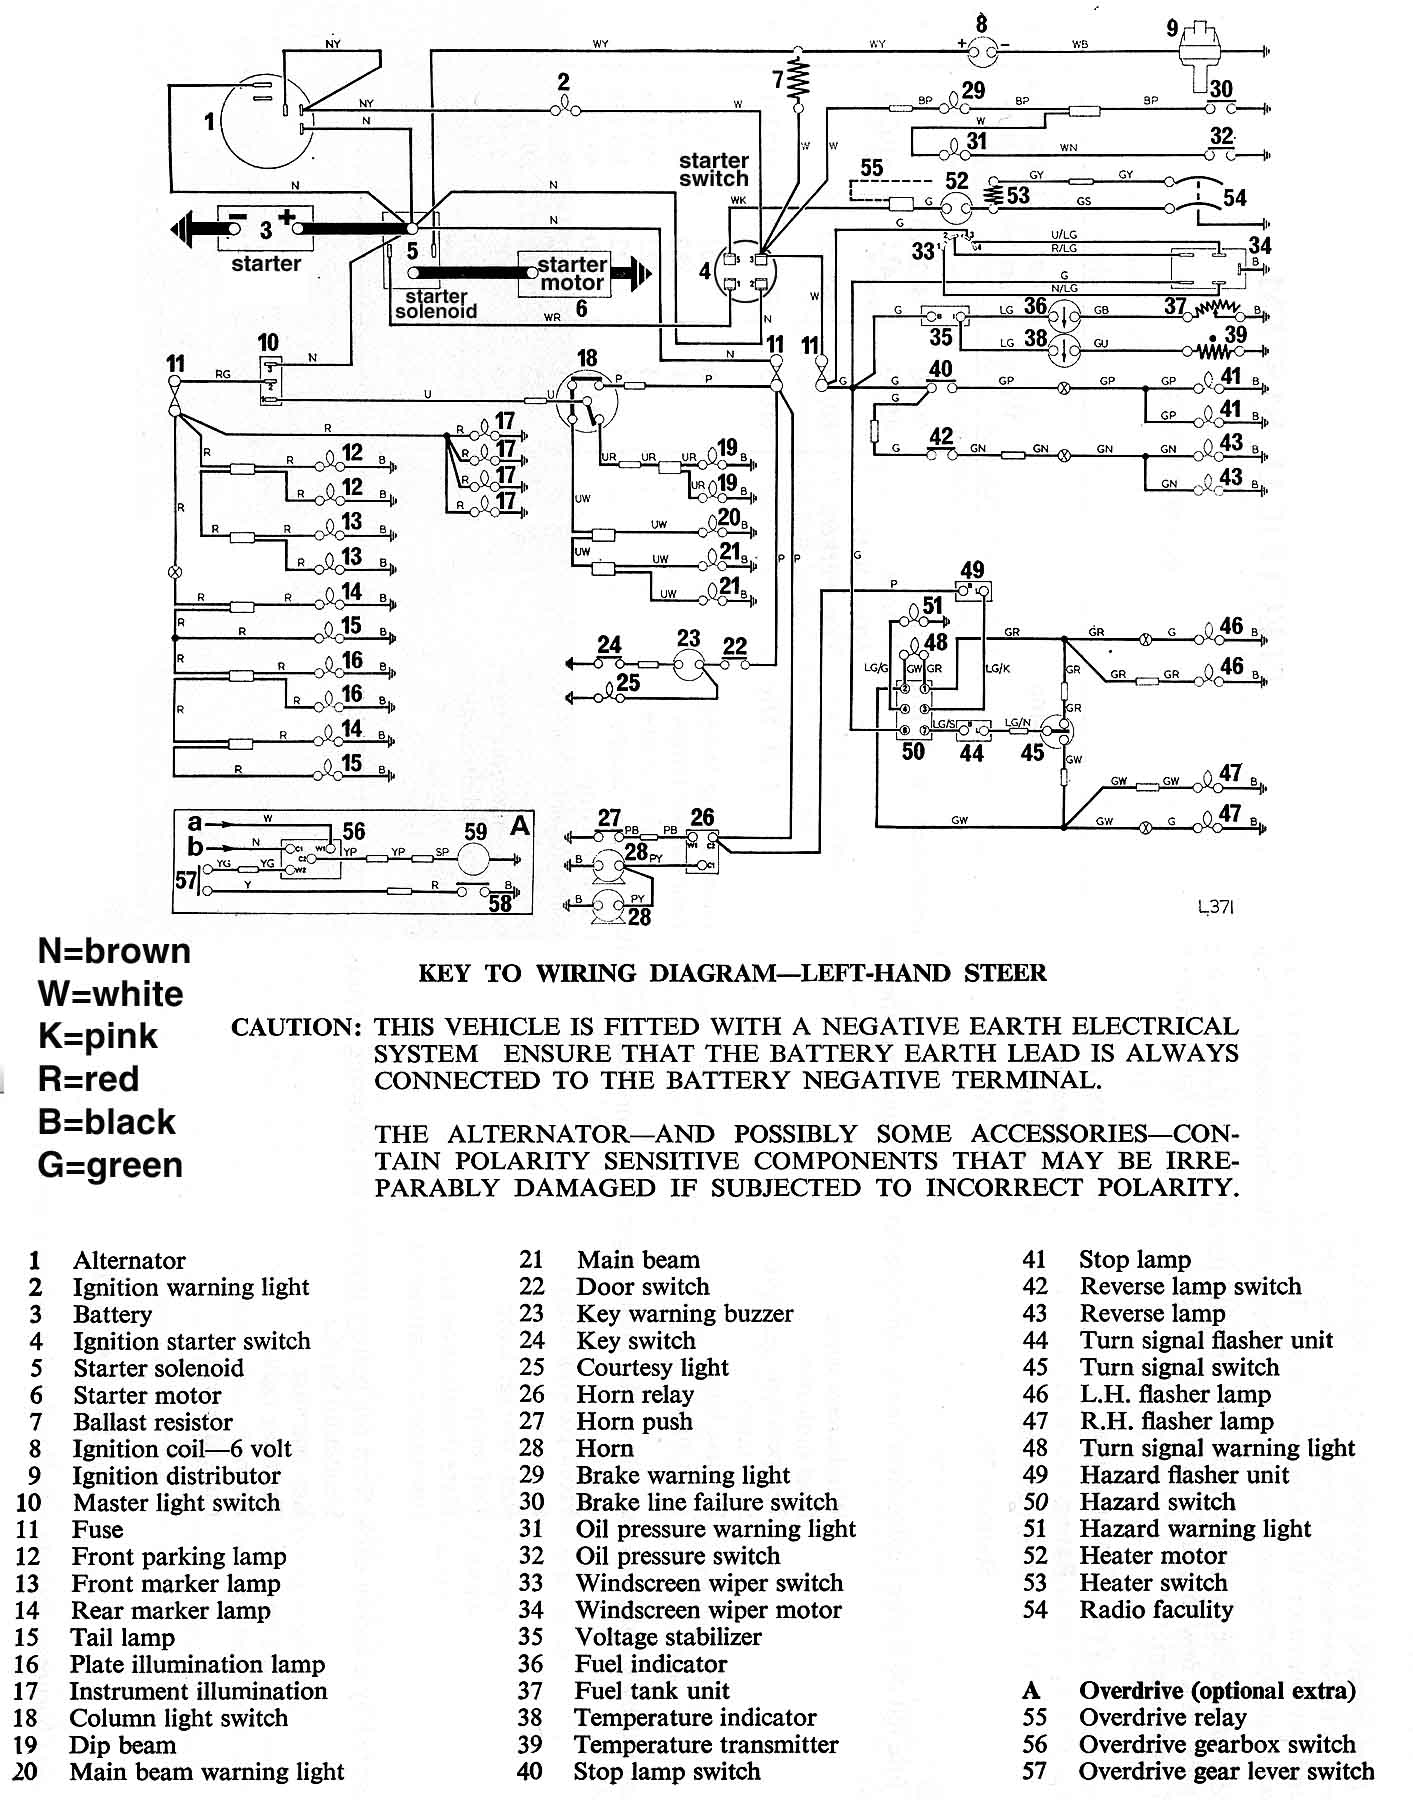 spitfire wiring diagram group electrical schemes triumph spitfire drawing 74 spitfire wiring diagram wiring diagram